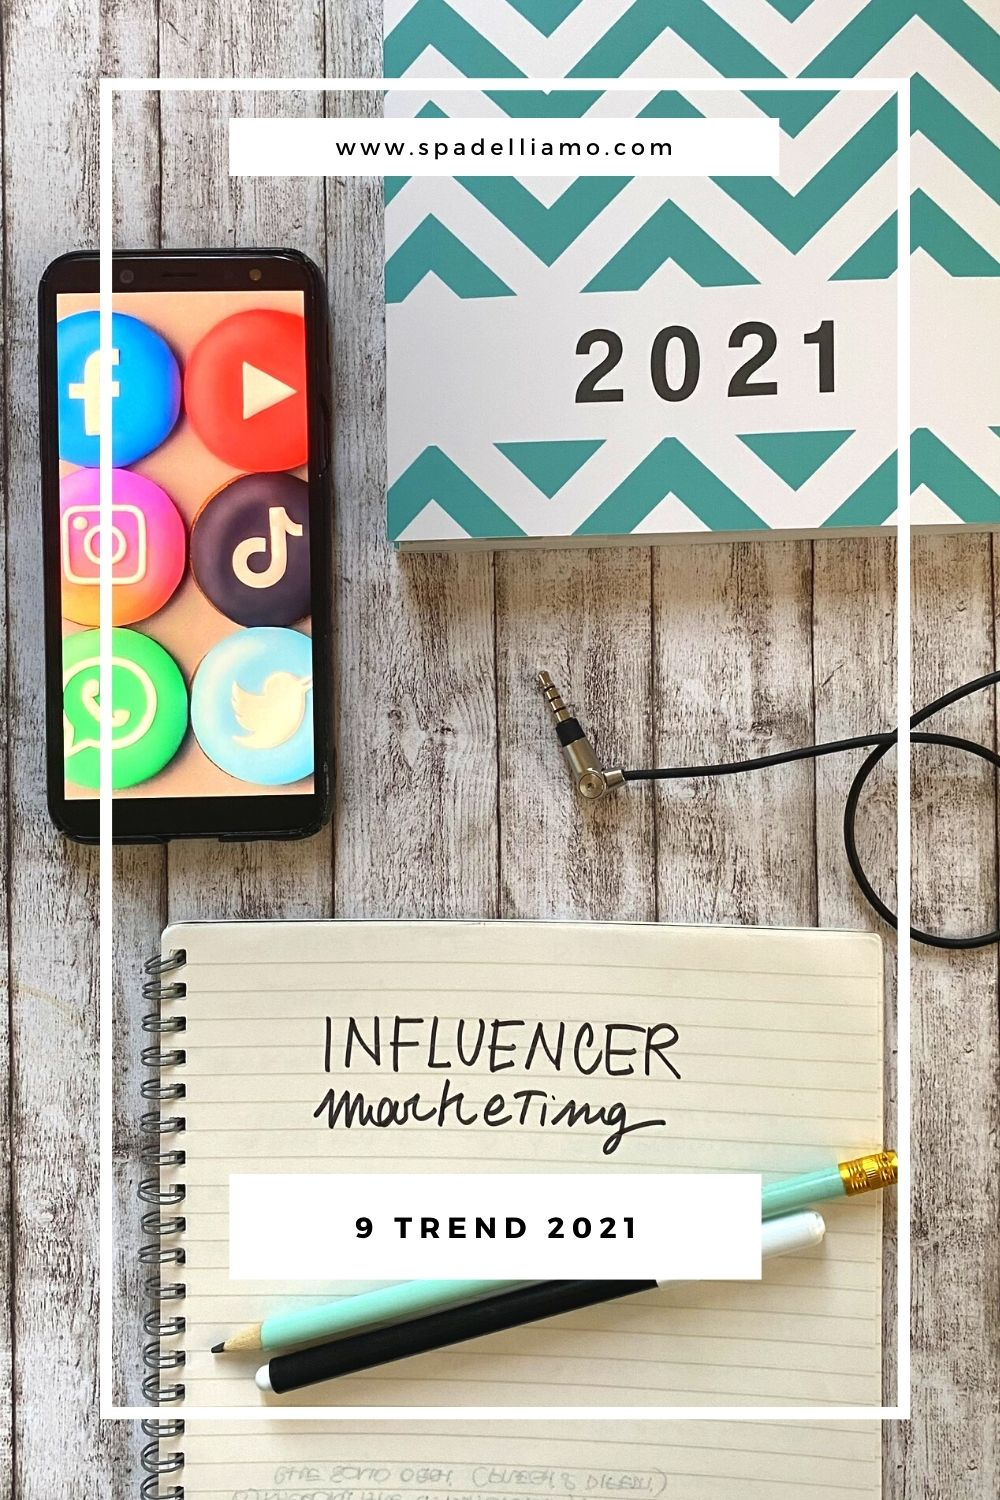 trend influencer marketing 2021_spadelliamo_digital snack